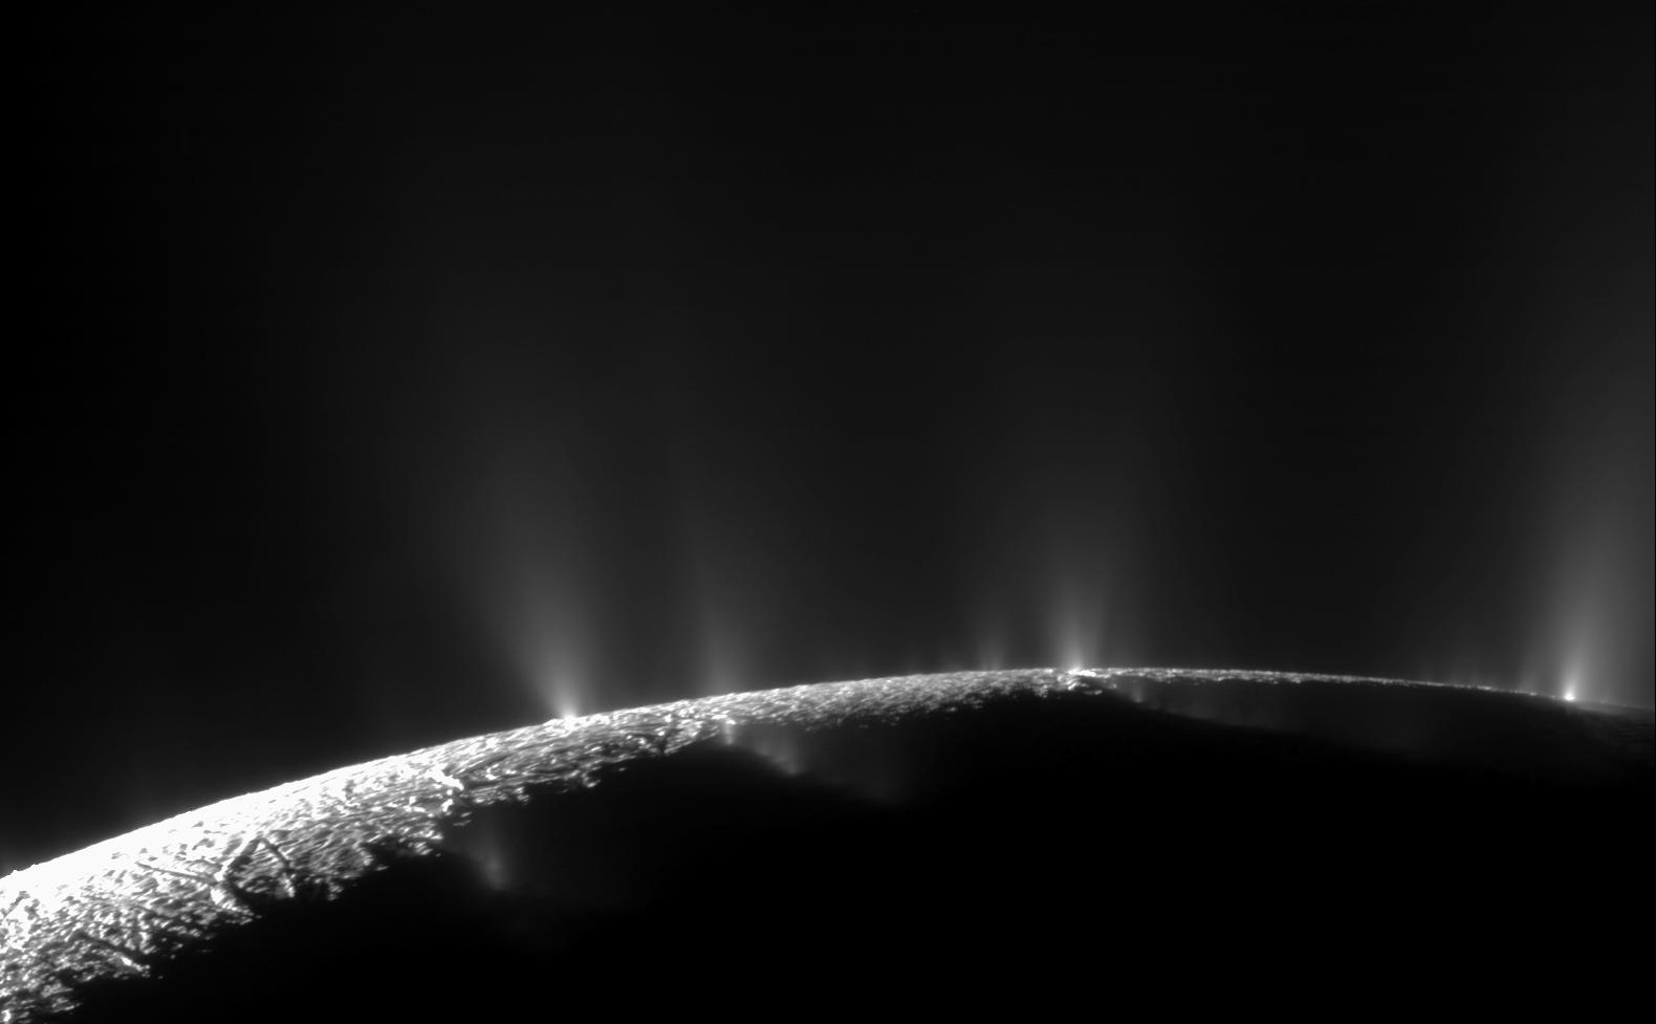 The plumes of Enceladus, captured spewing from the moon's surface by the Cassini spacecraft at a distance of 14,000 kilometers (9,000 miles) in 2010. (Credit: NASA/JPL/Space Science Institute)